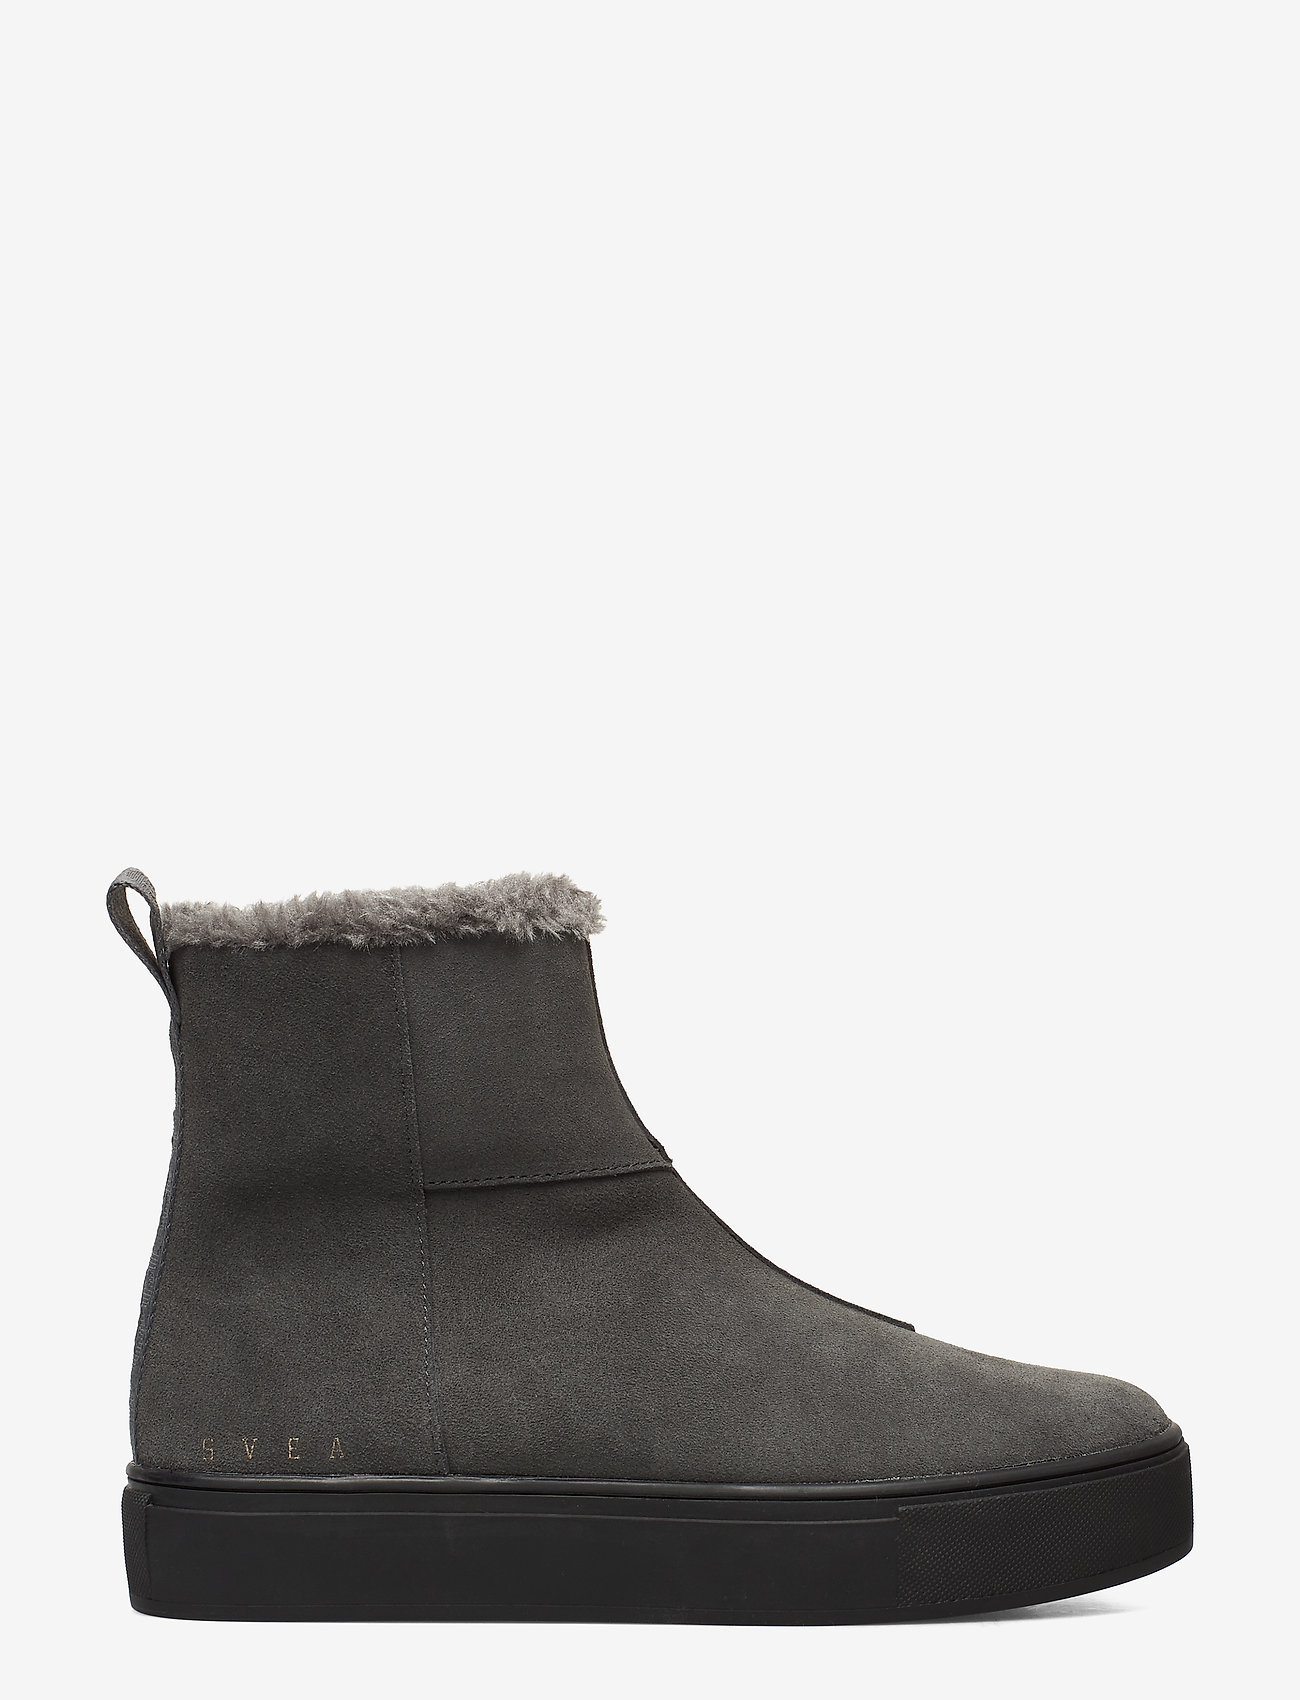 Svea - Suede / Pile Boots - flat ankle boots - grey - 1